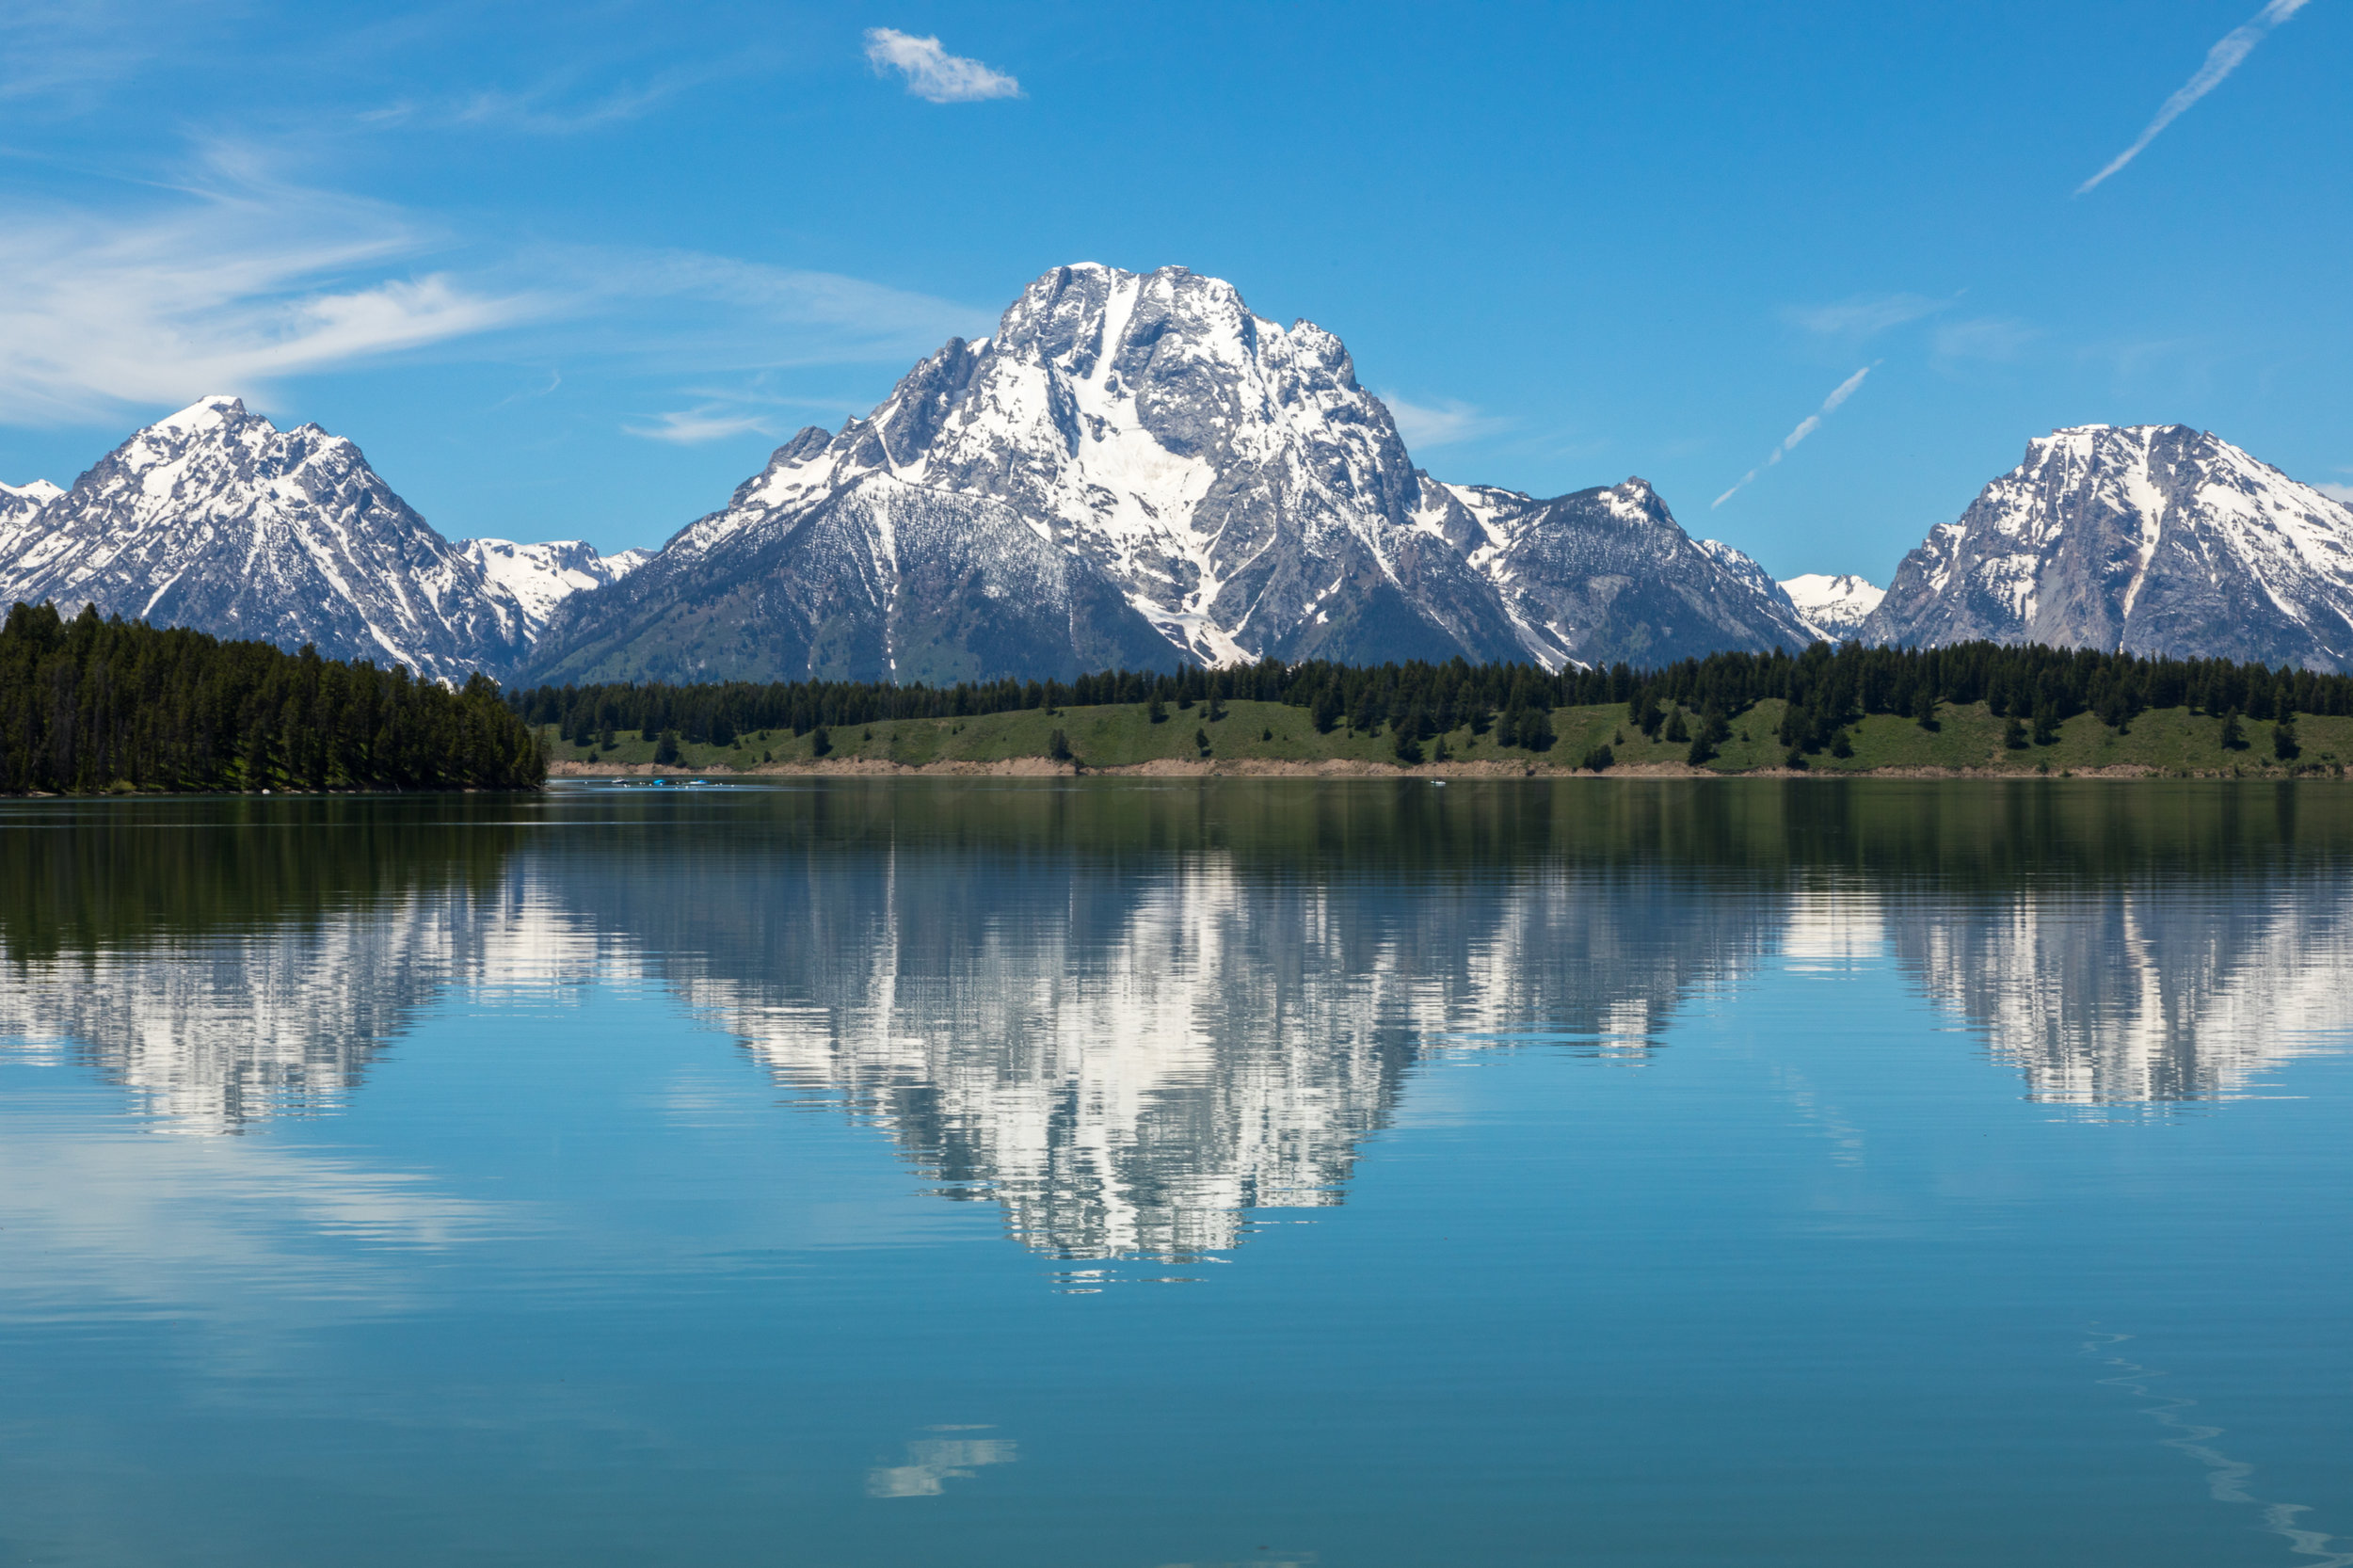 Reflection of Mount Moran in Jackson Lake, Image # 2494